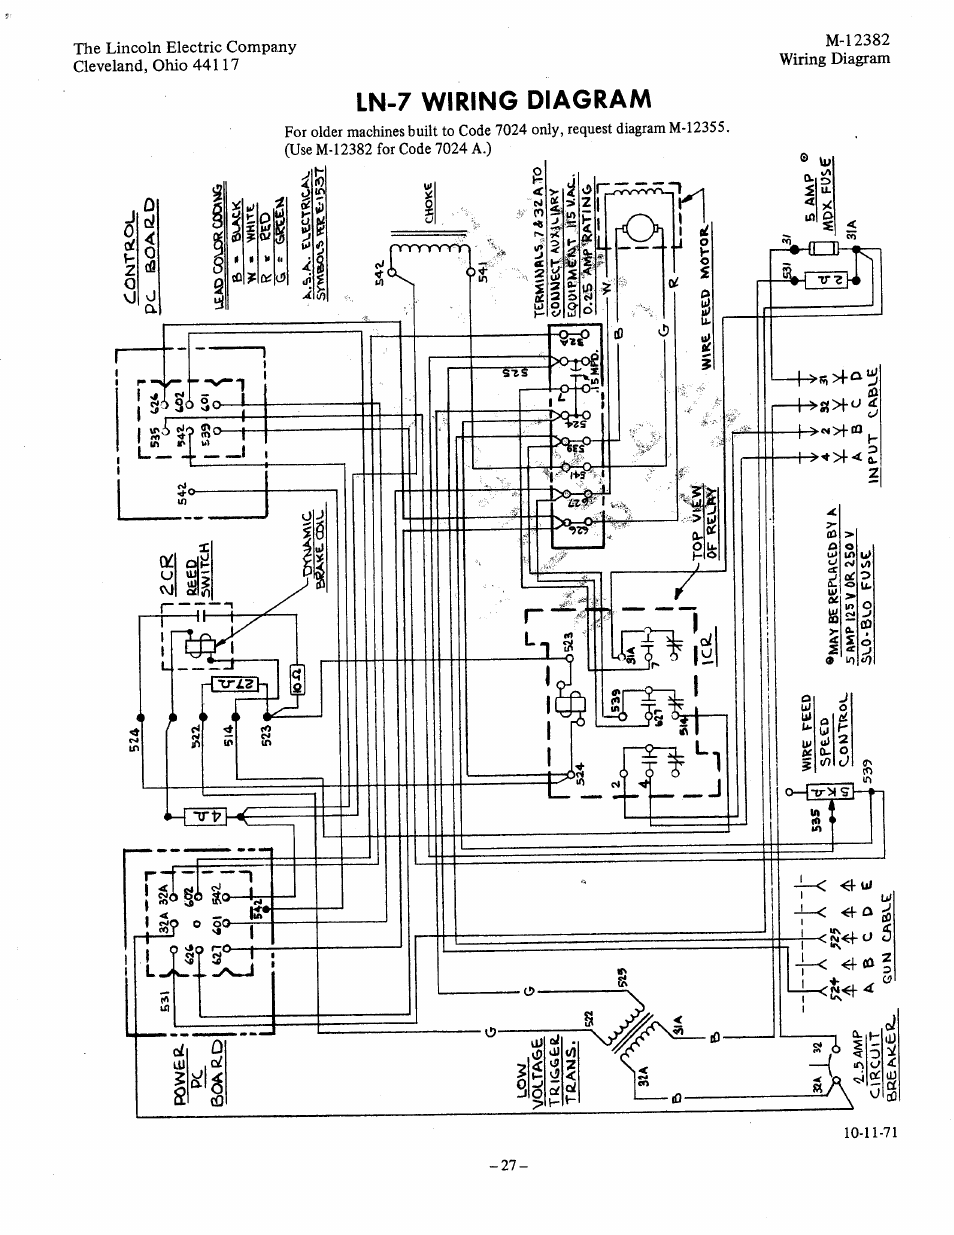 idealarc welder diagram 95 ford ranger radio wiring lincoln 300 auto electrical 250 diagrams sa